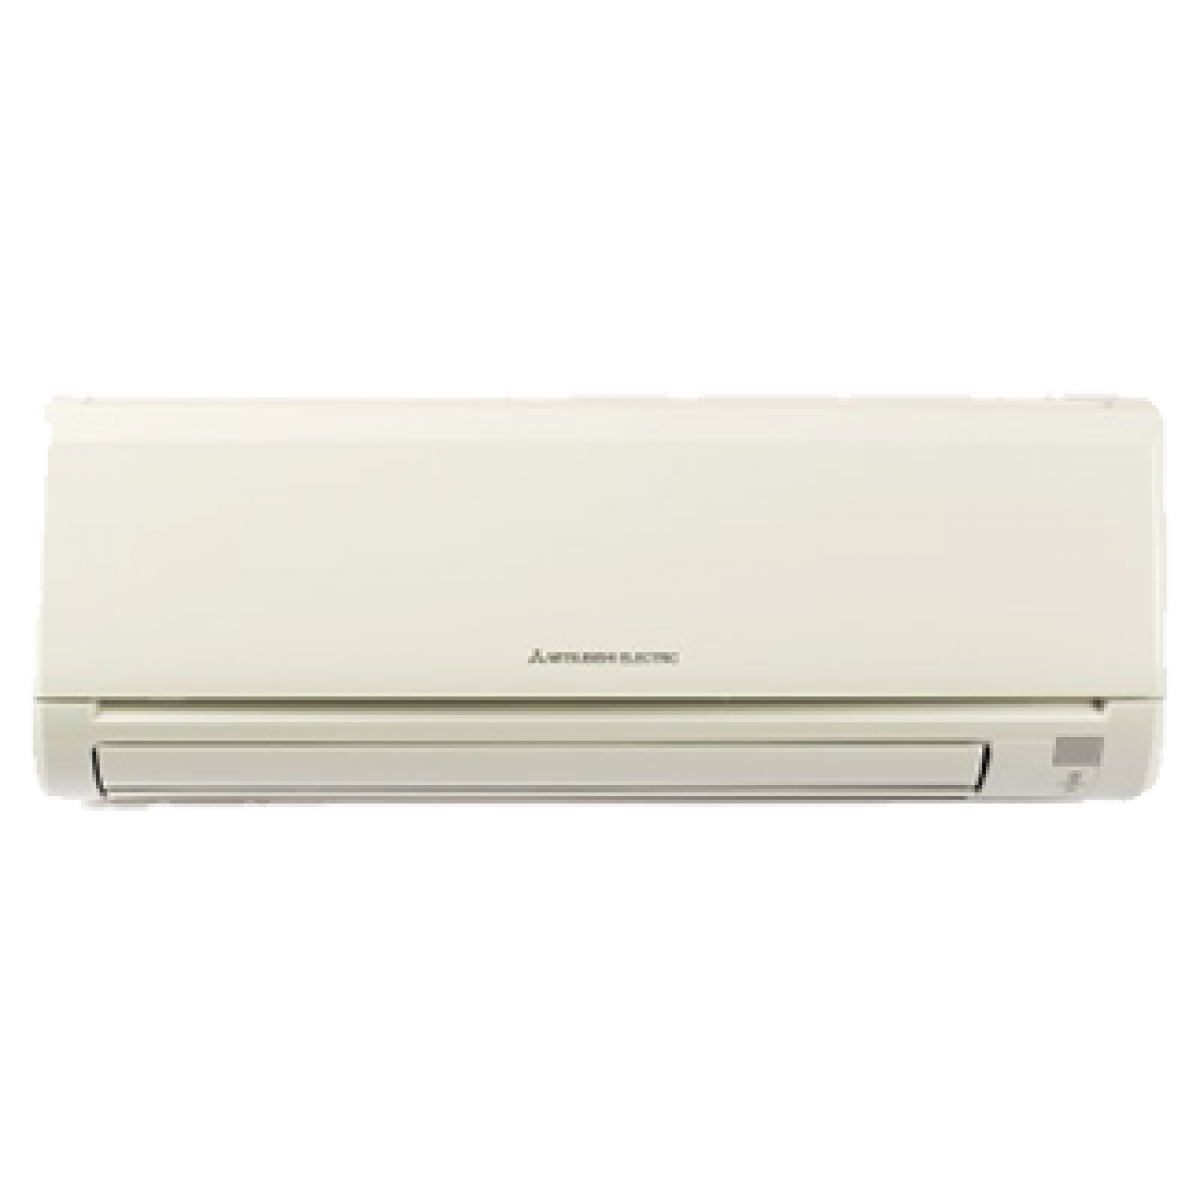 #787853 Mitsubishi 12K BTU 23.1 SEER Heat Pump System In  Best 5363 Mitsubishi Ductless Systems photos with 1200x1200 px on helpvideos.info - Air Conditioners, Air Coolers and more